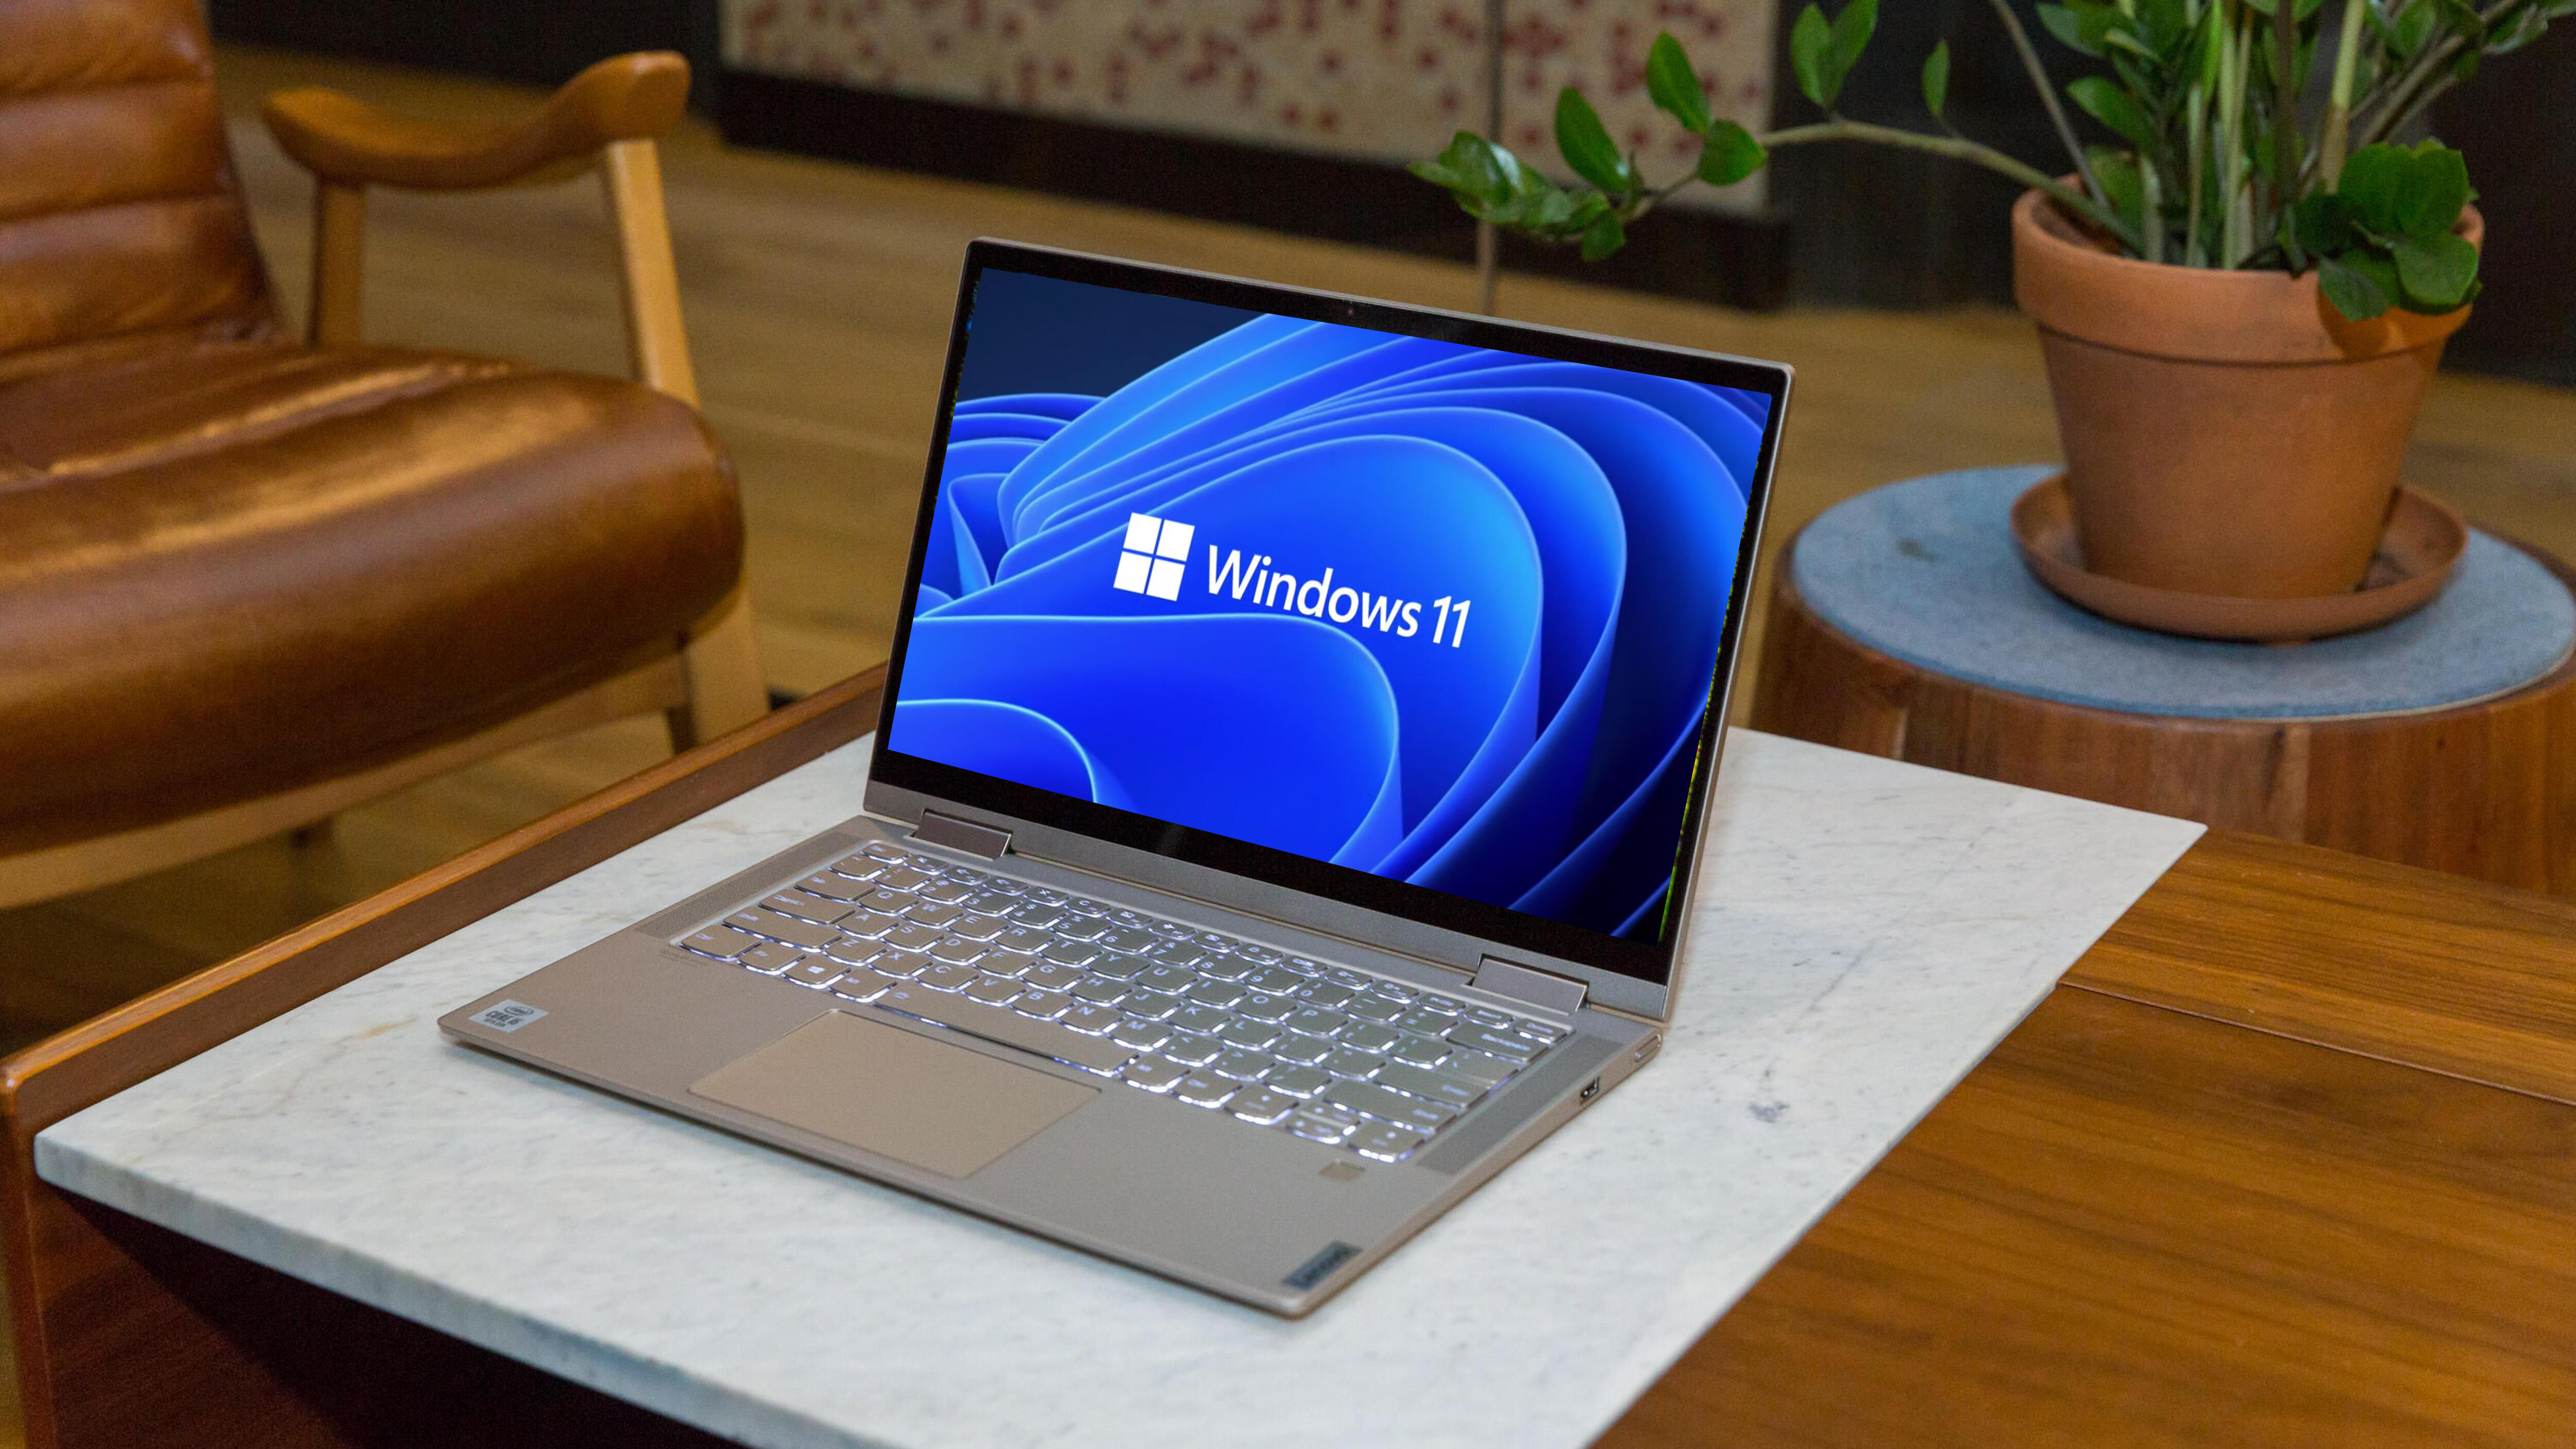 Windows 11 compatibility: Check if your PC meets Microsoft